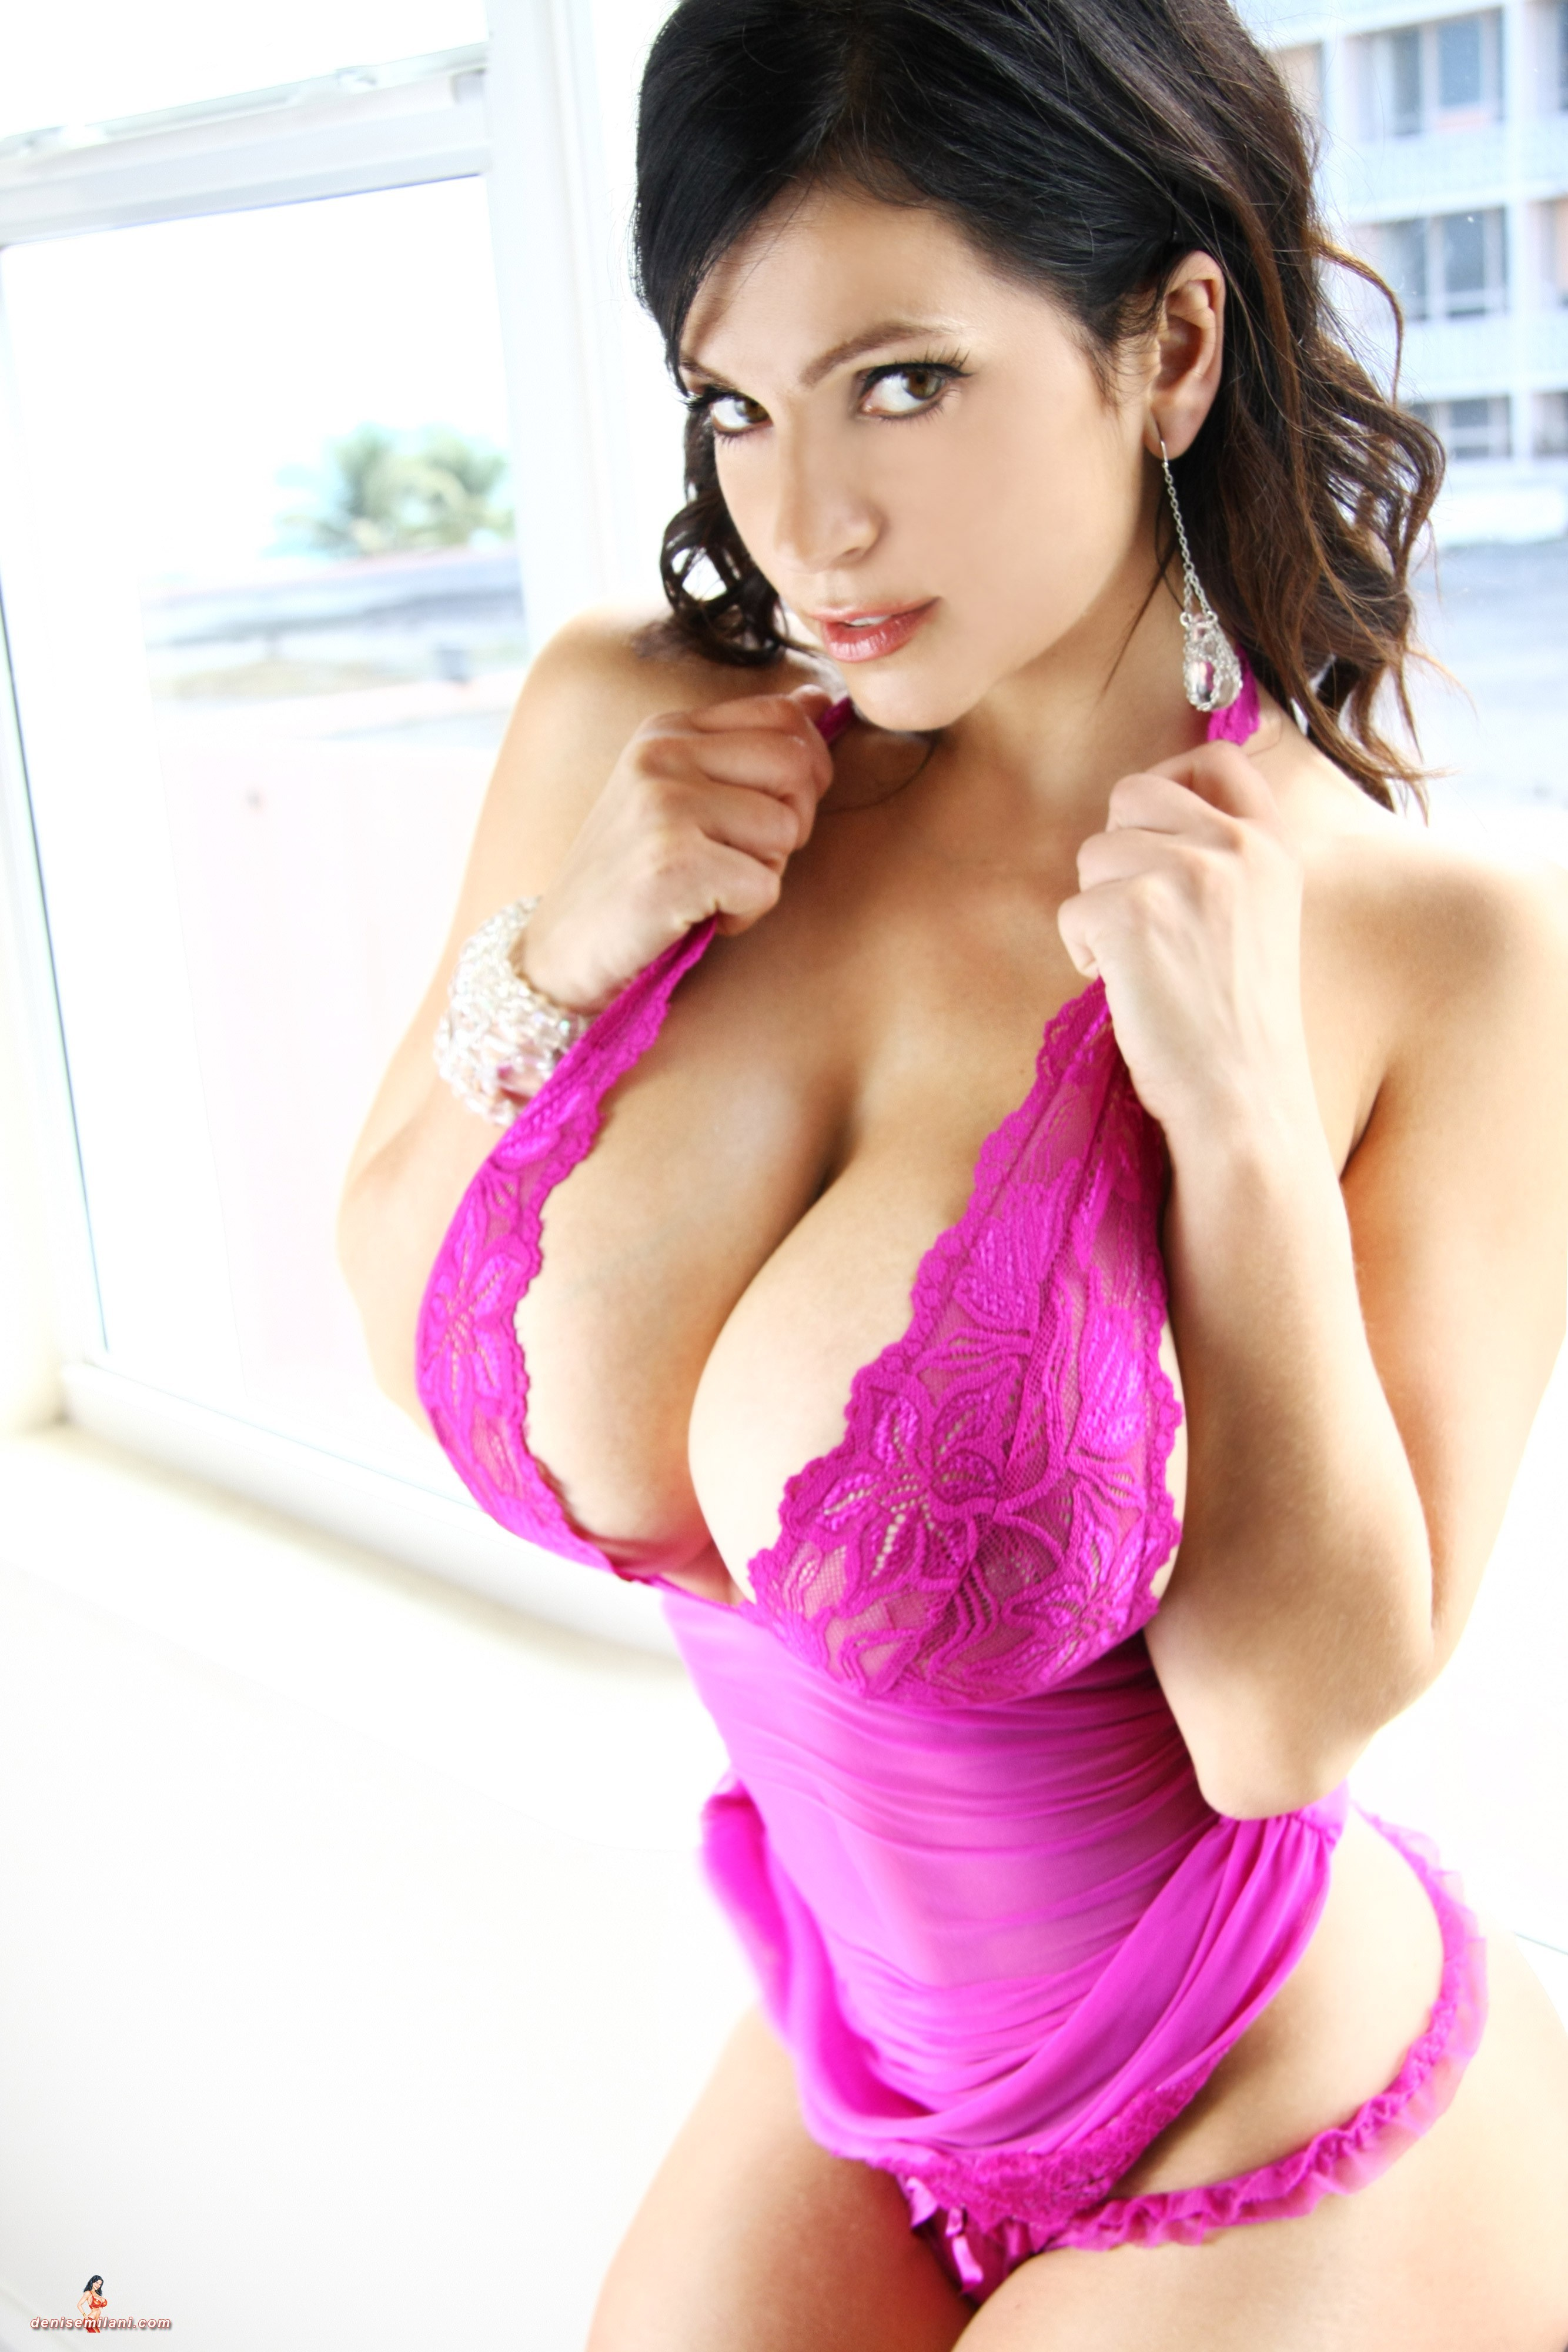 Denise Milani High Quality Wallpapers For Iphone